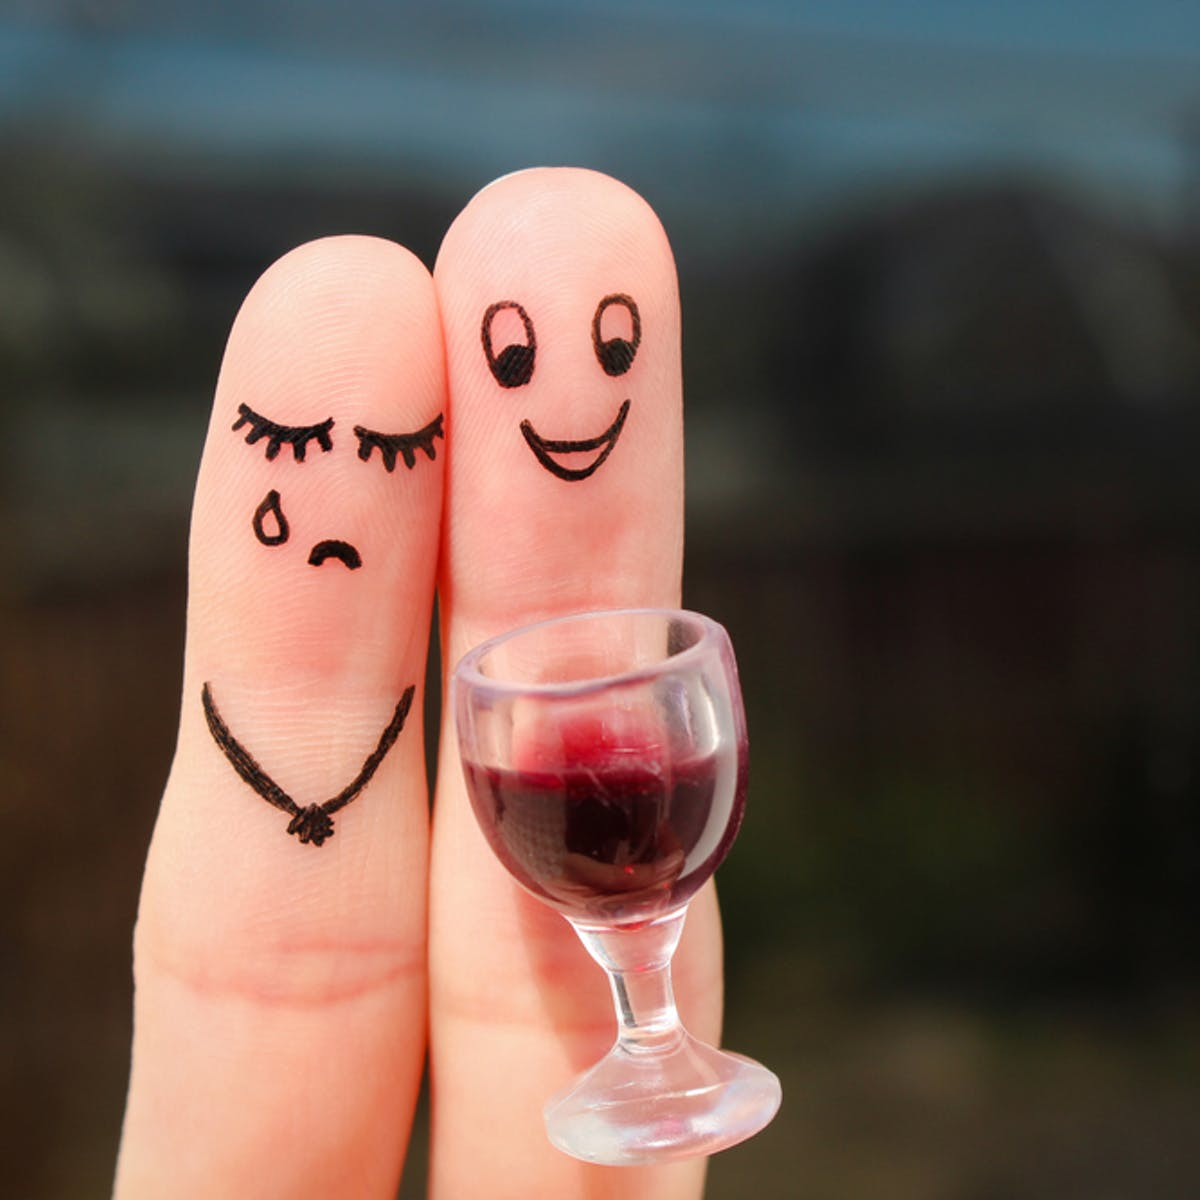 Why alcohol makes you feel warm – and other strange effects